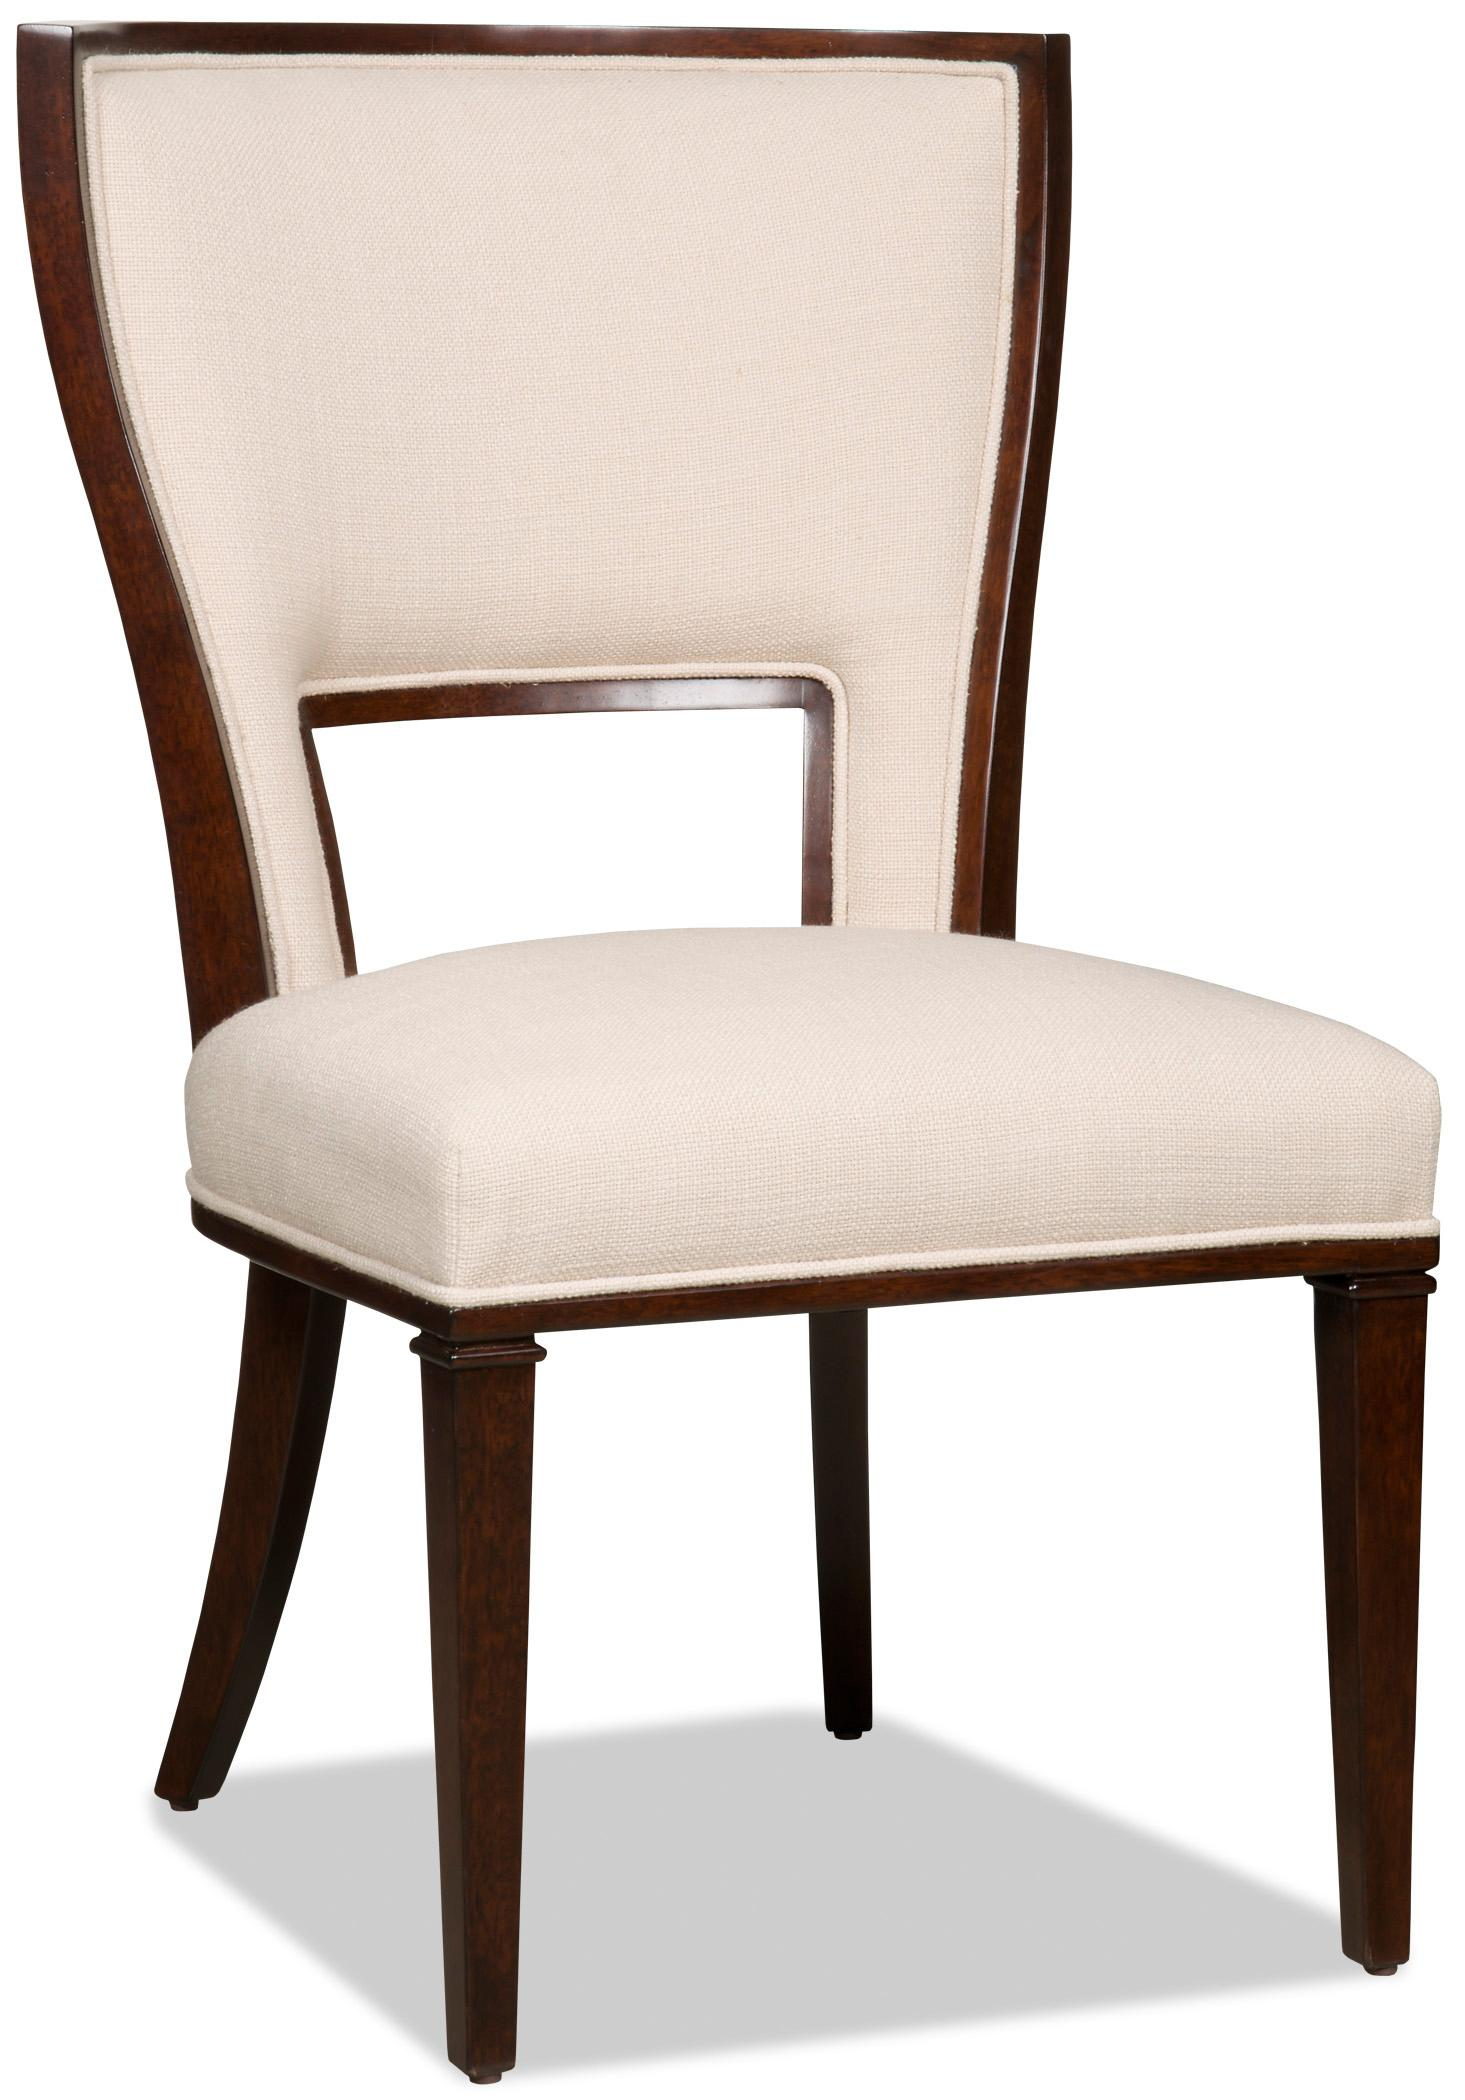 Hooker Furniture Dining Chairs Dining Side Chair - Item Number: 300-350038